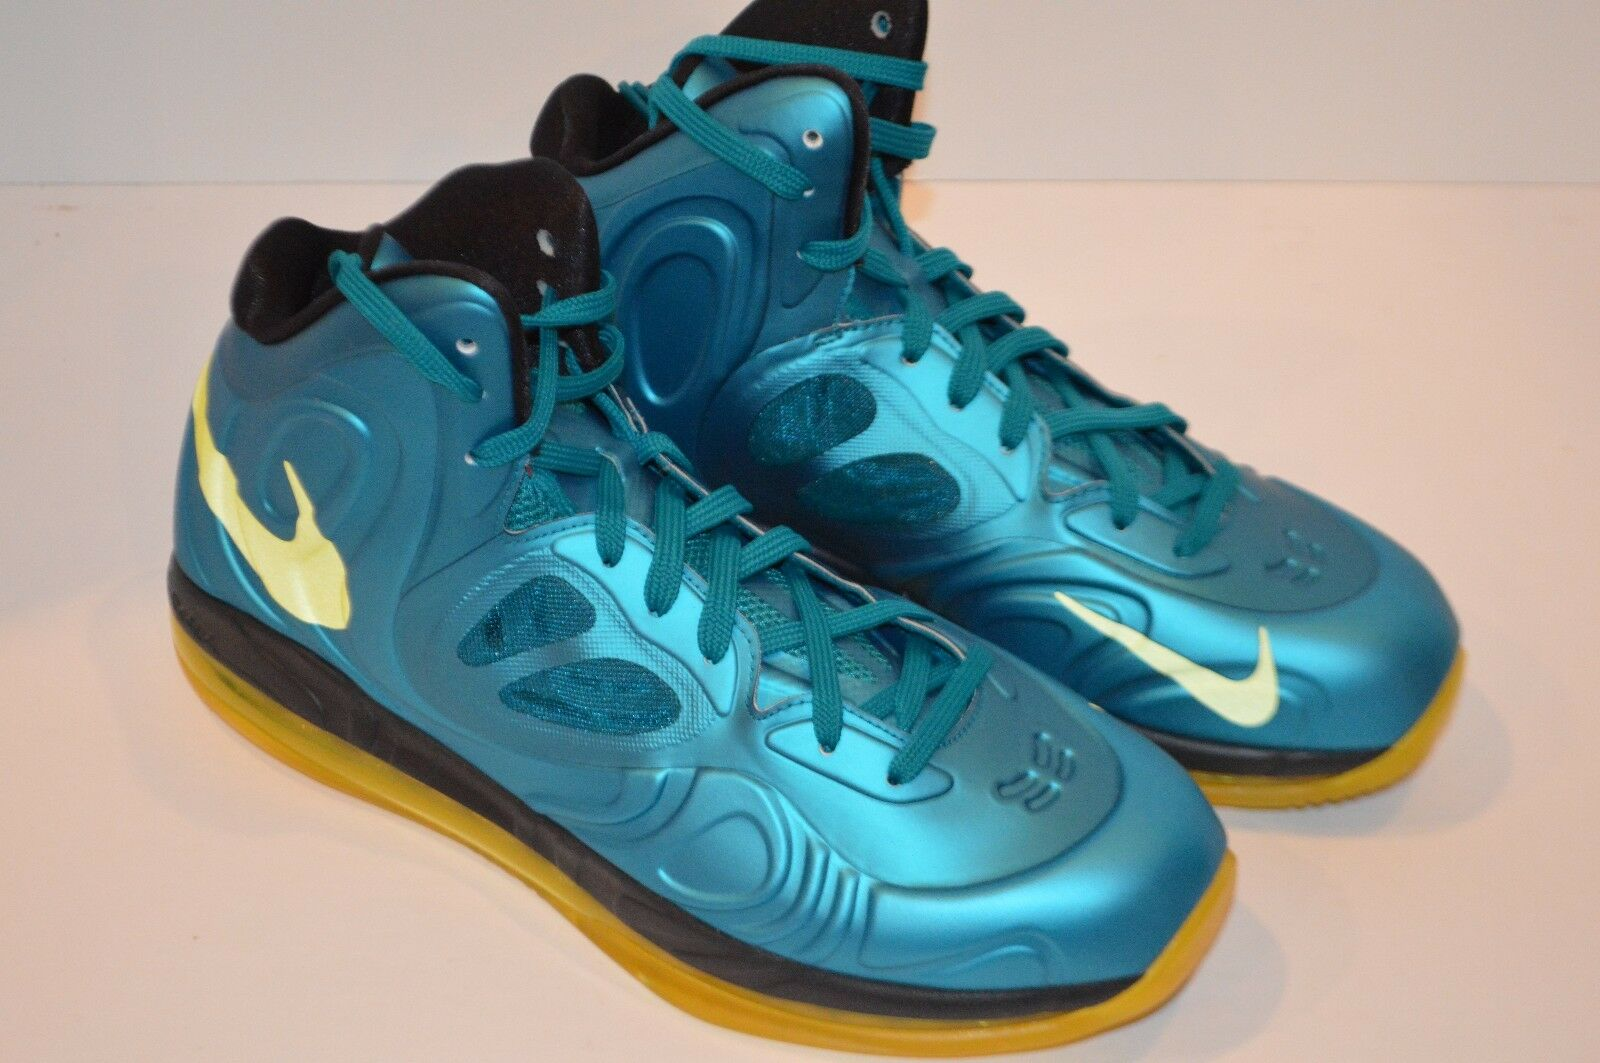 Nike Air 303 Max Hyperposite Uomini 524862 303 Air Dimensioni: 10 47d9c5